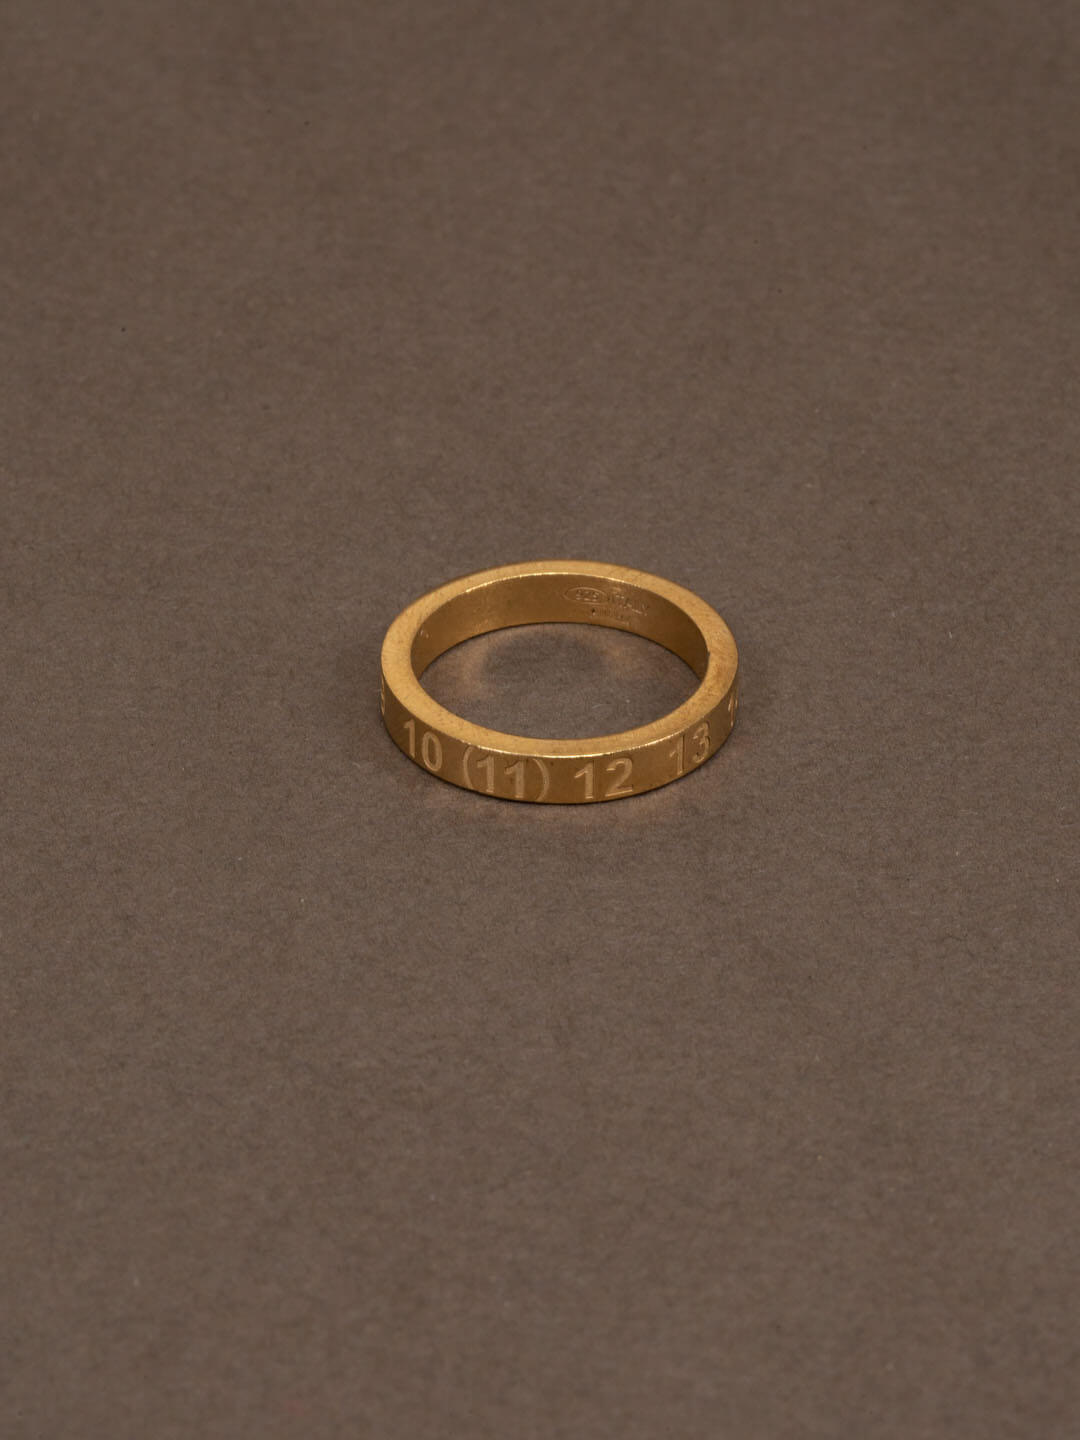 Maison Margiela Small Ring Gold In Other